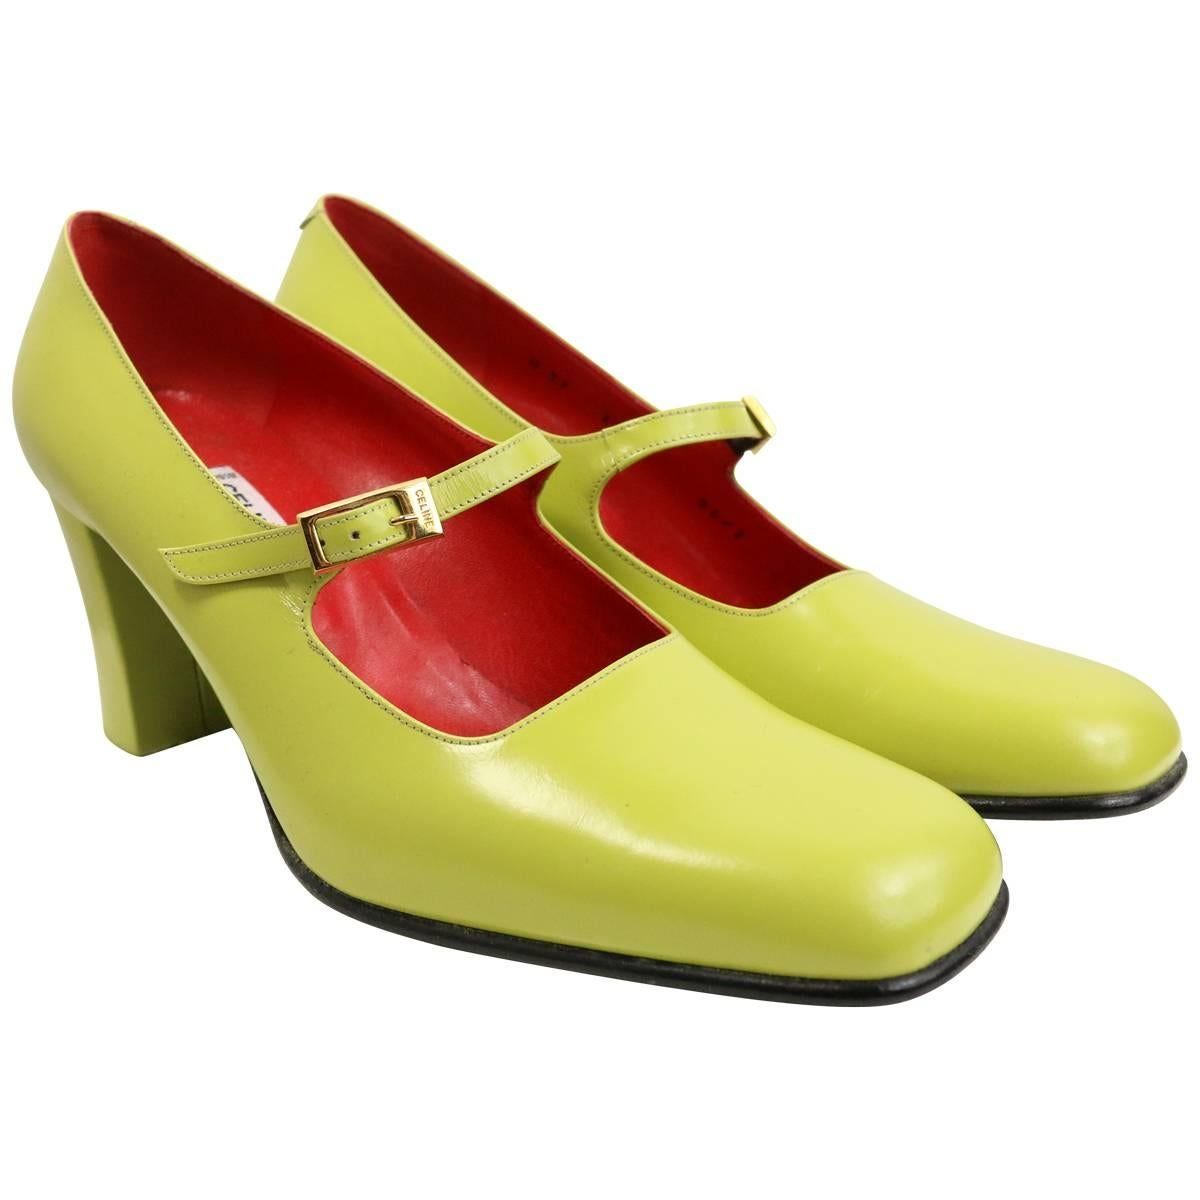 Celine Green Leather Mary Jane Shoes